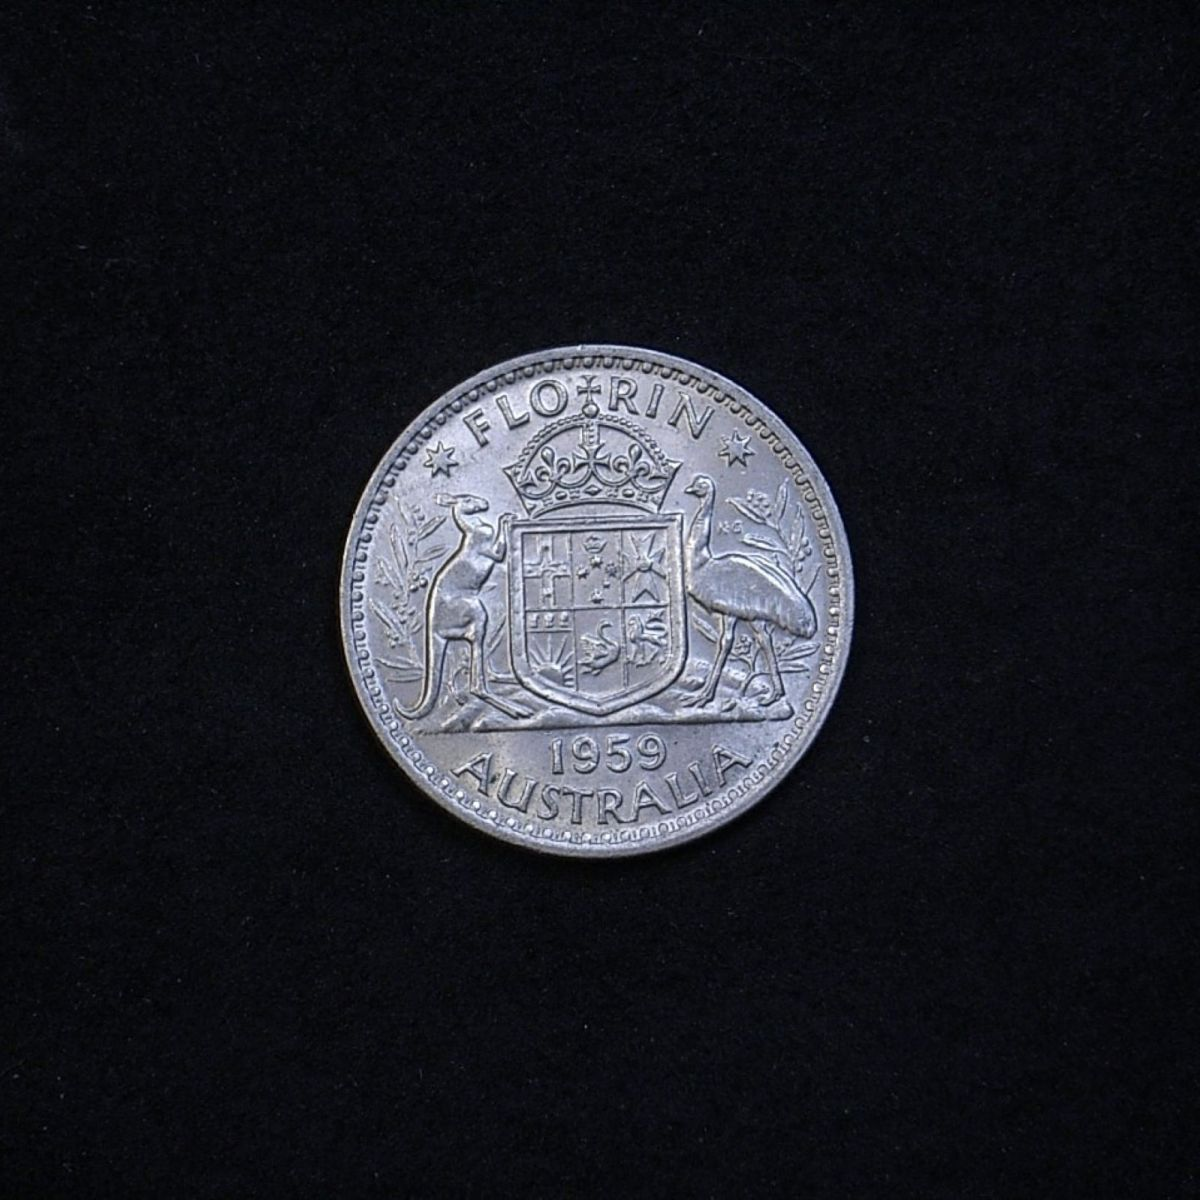 Aus Florin 1959 reverse showing lustre and overall appearance